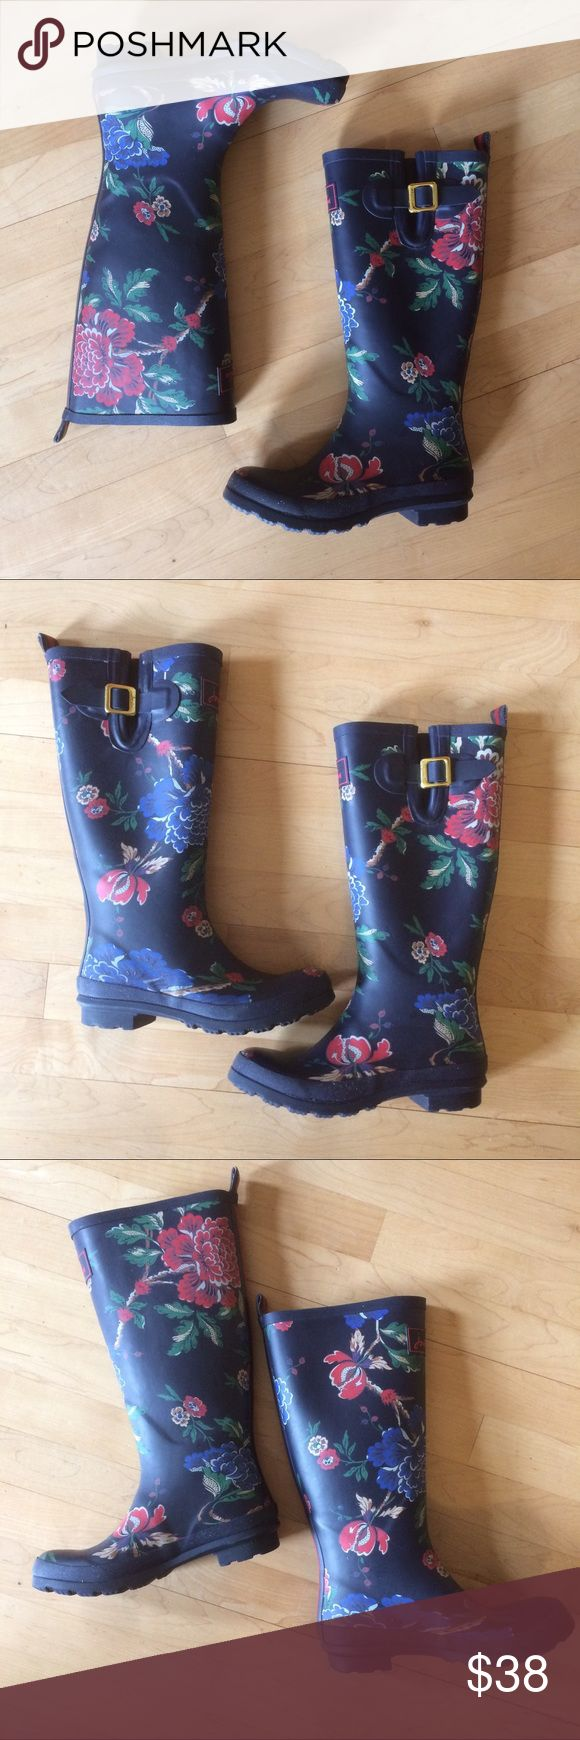 "Most adorable floral wellies cutest navy blue pull slip on style rain boots. Matte Navy blue with bright floral print-red, & blue peony floral w/ green leaves. Functioning buckle on the top allows for wide calf. Interior blue + red stripe, pulling away a bit, + light scratching but does not affect function. Good used condtion, with LOTS of life left. Selling bc I purchased a new pair of rainboots. Perfect pop of fun for a dreary rainy day! UK4 US6 EURO37 1.25"" heel, 13"" shaft, 16""…"